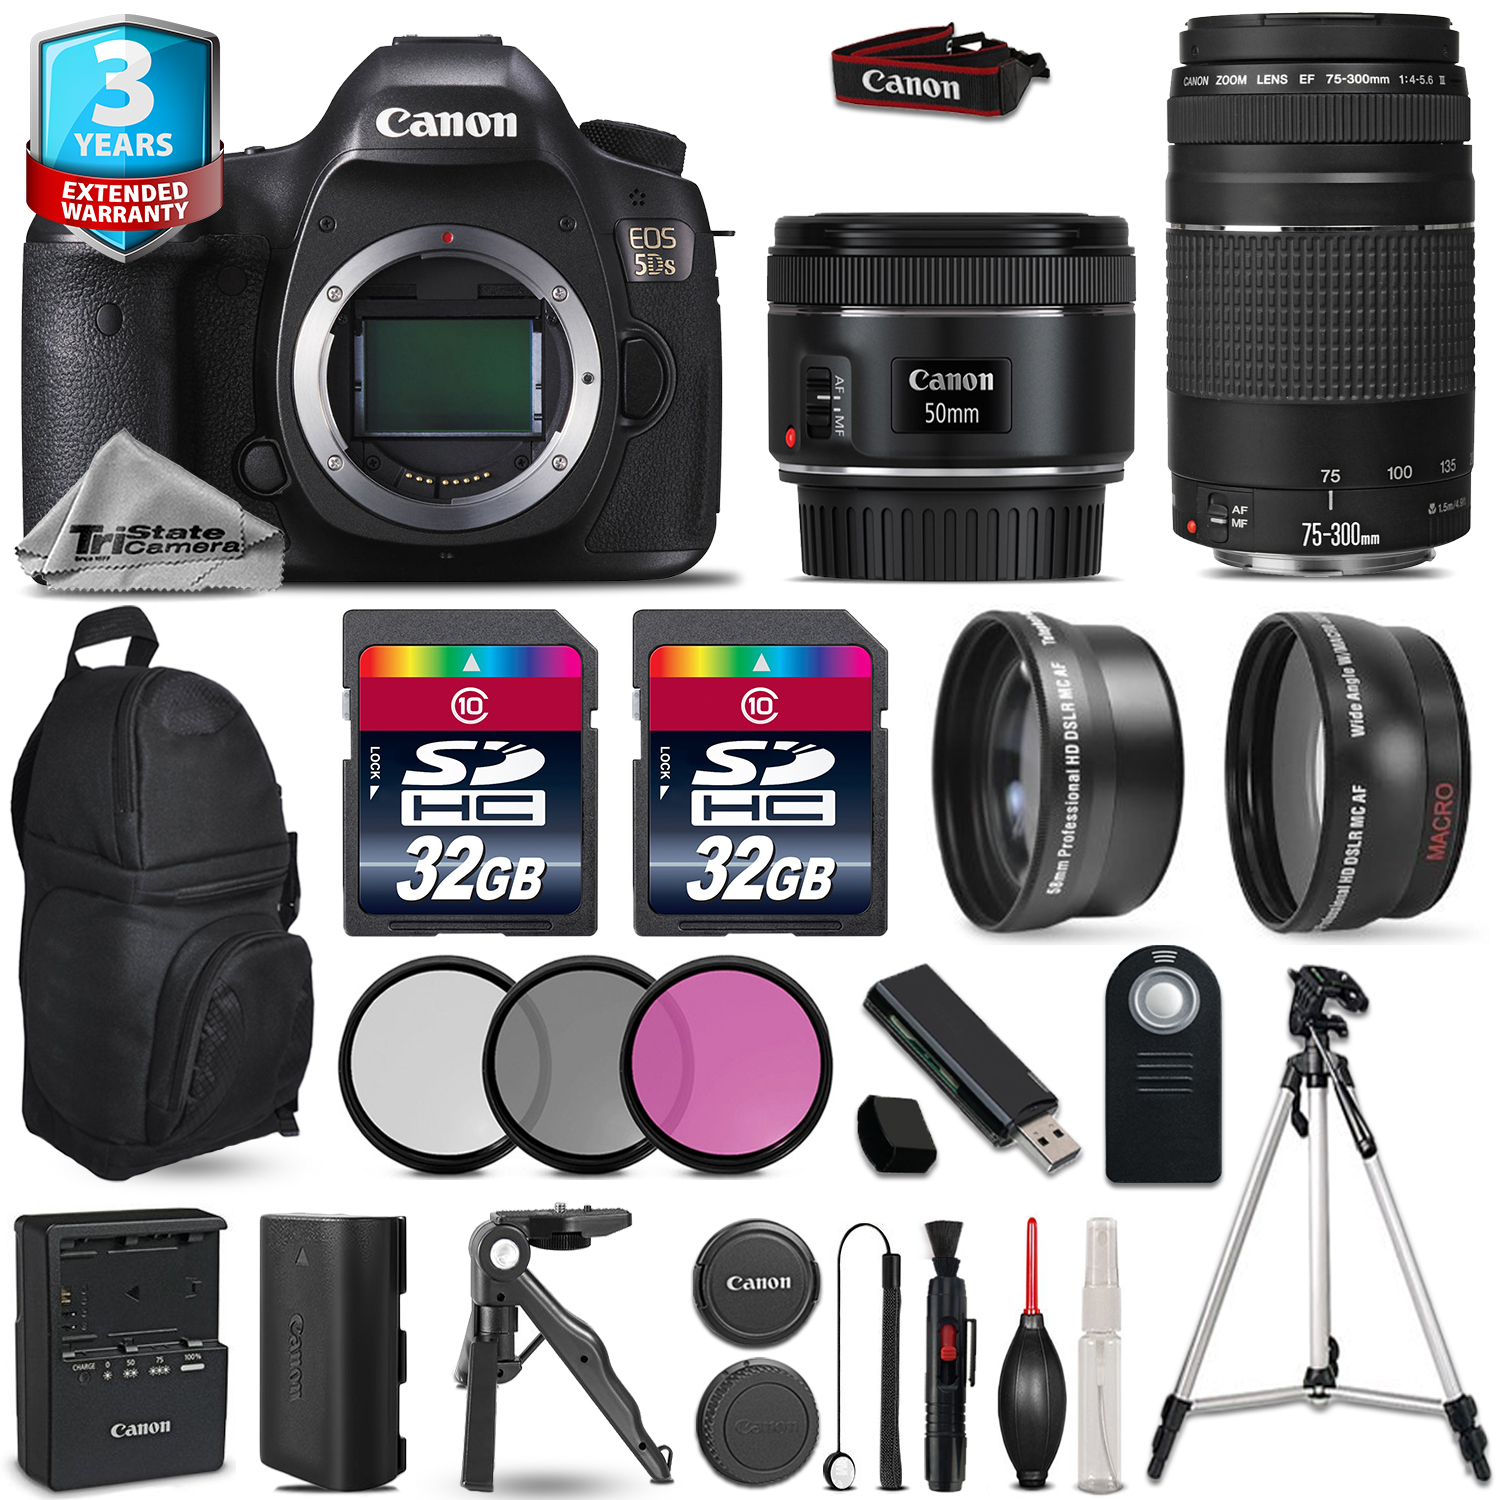 EOS 5DS DSLR Camera + 50mm 1.8 + 75-300mm III + 3PC Filter + 2yr Warranty *FREE SHIPPING*